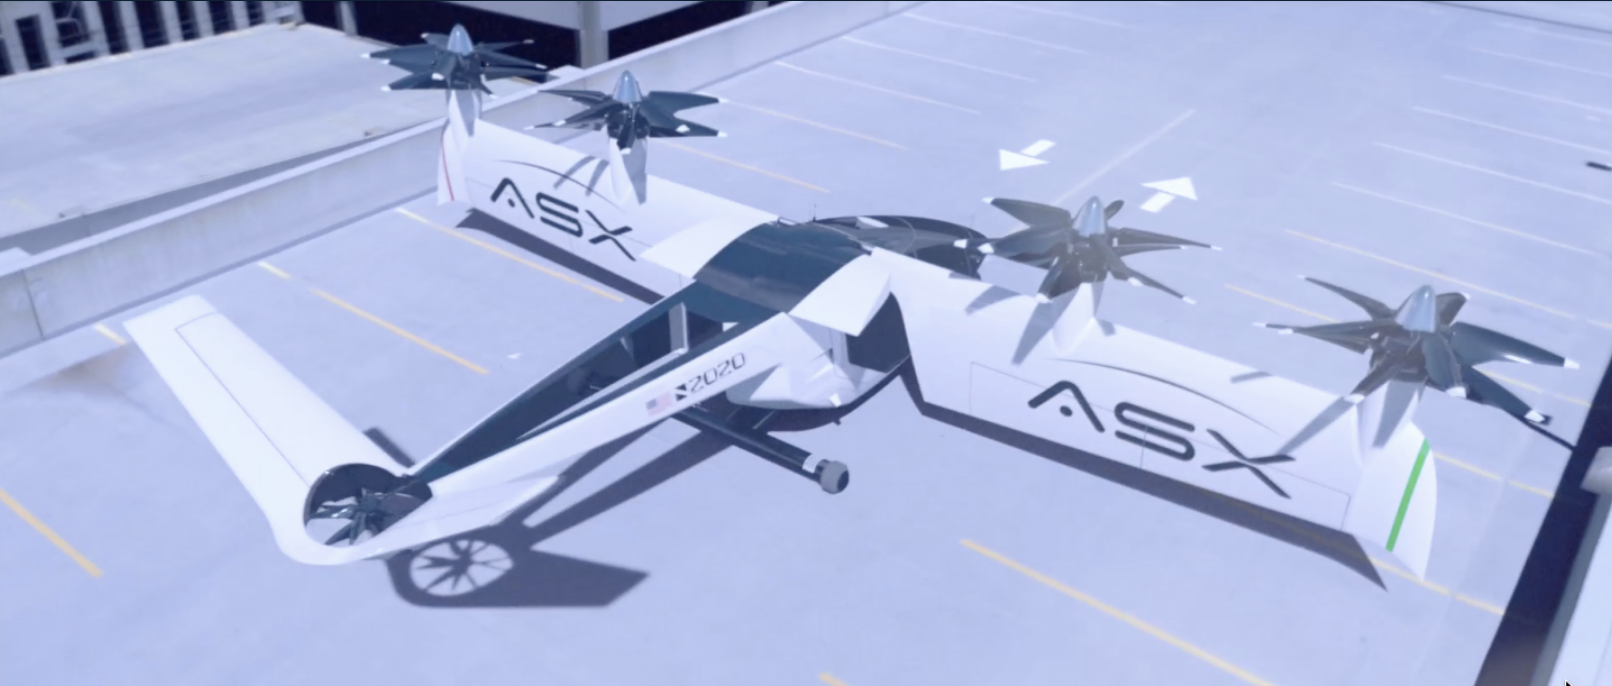 ASX teams up with Spirit AeroSystems for affordable eVTOL UAM - Electrek